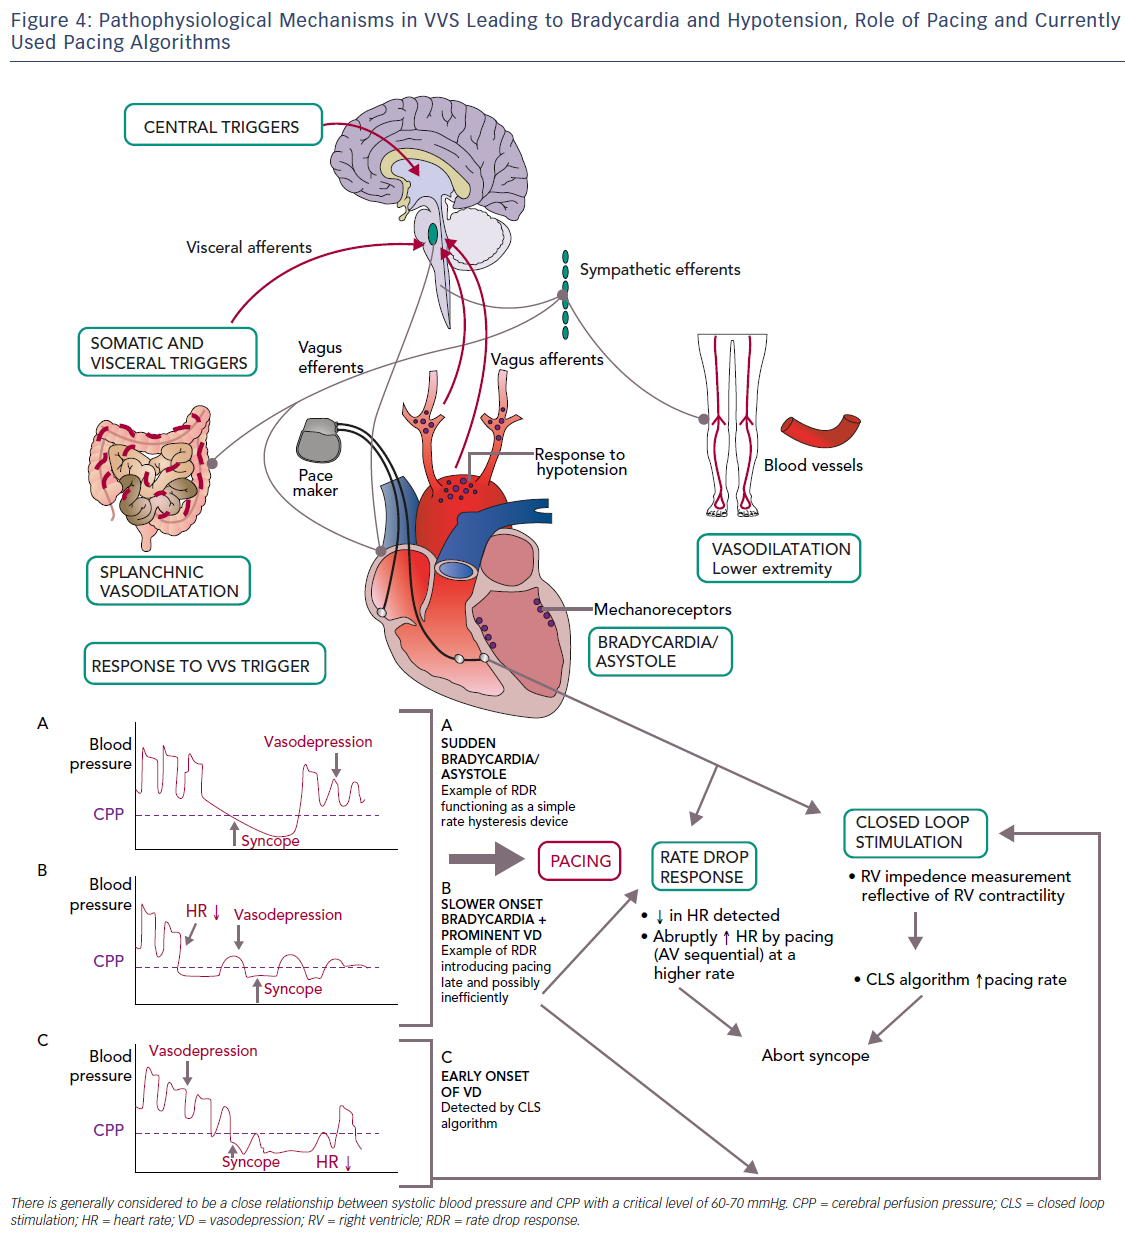 Figure 4: Pathophysiological Mechanisms in VVS Leading to Bradycardia and Hypotension, Role of Pacing and Currently Used Pacing Algorithms